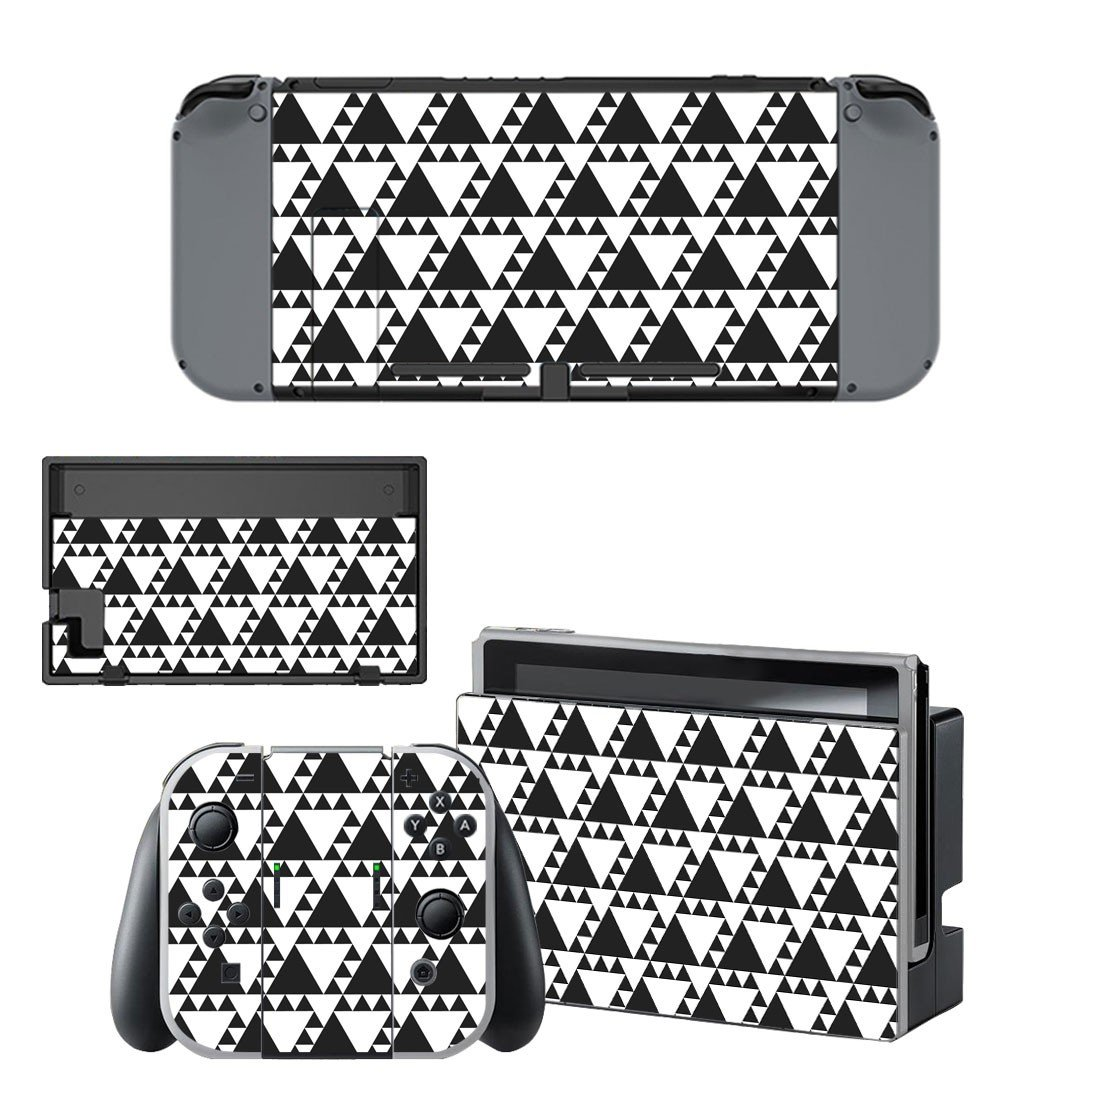 Traingle pattern decal for Nintendo switch console sticker skin